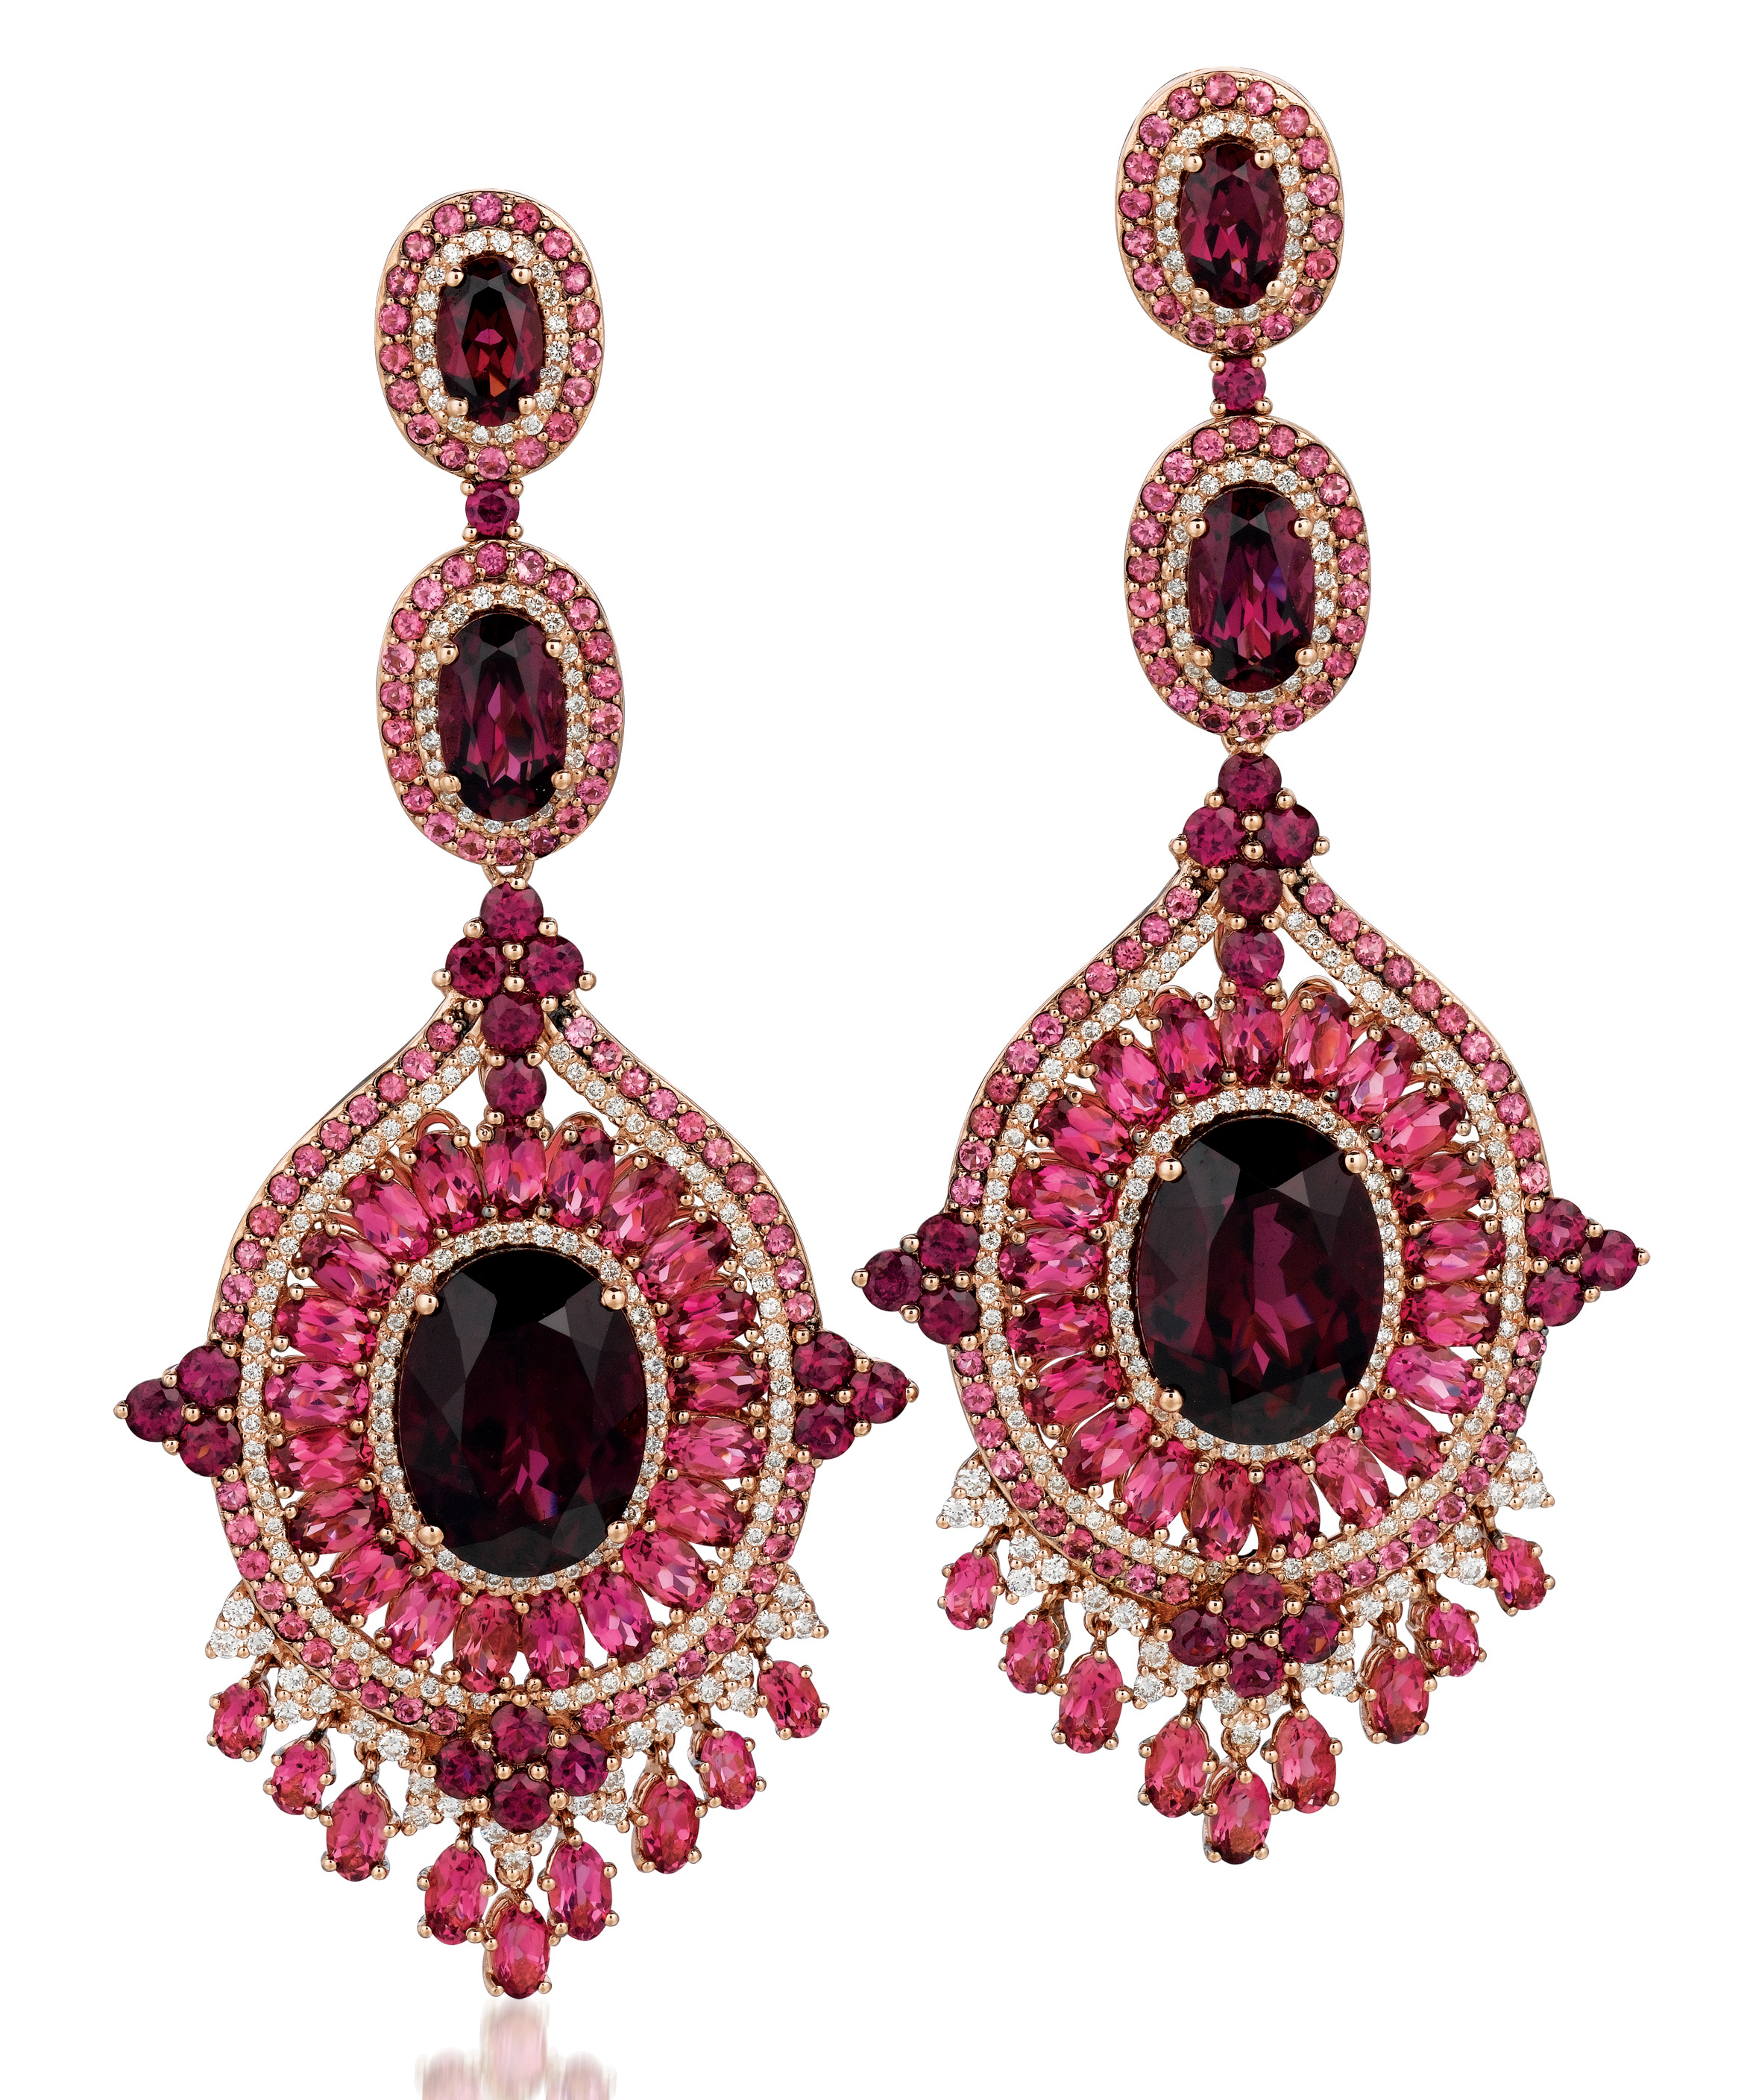 Le Vian Red Carpet Raspberry Rhodolite earrings | JCK On Your Market